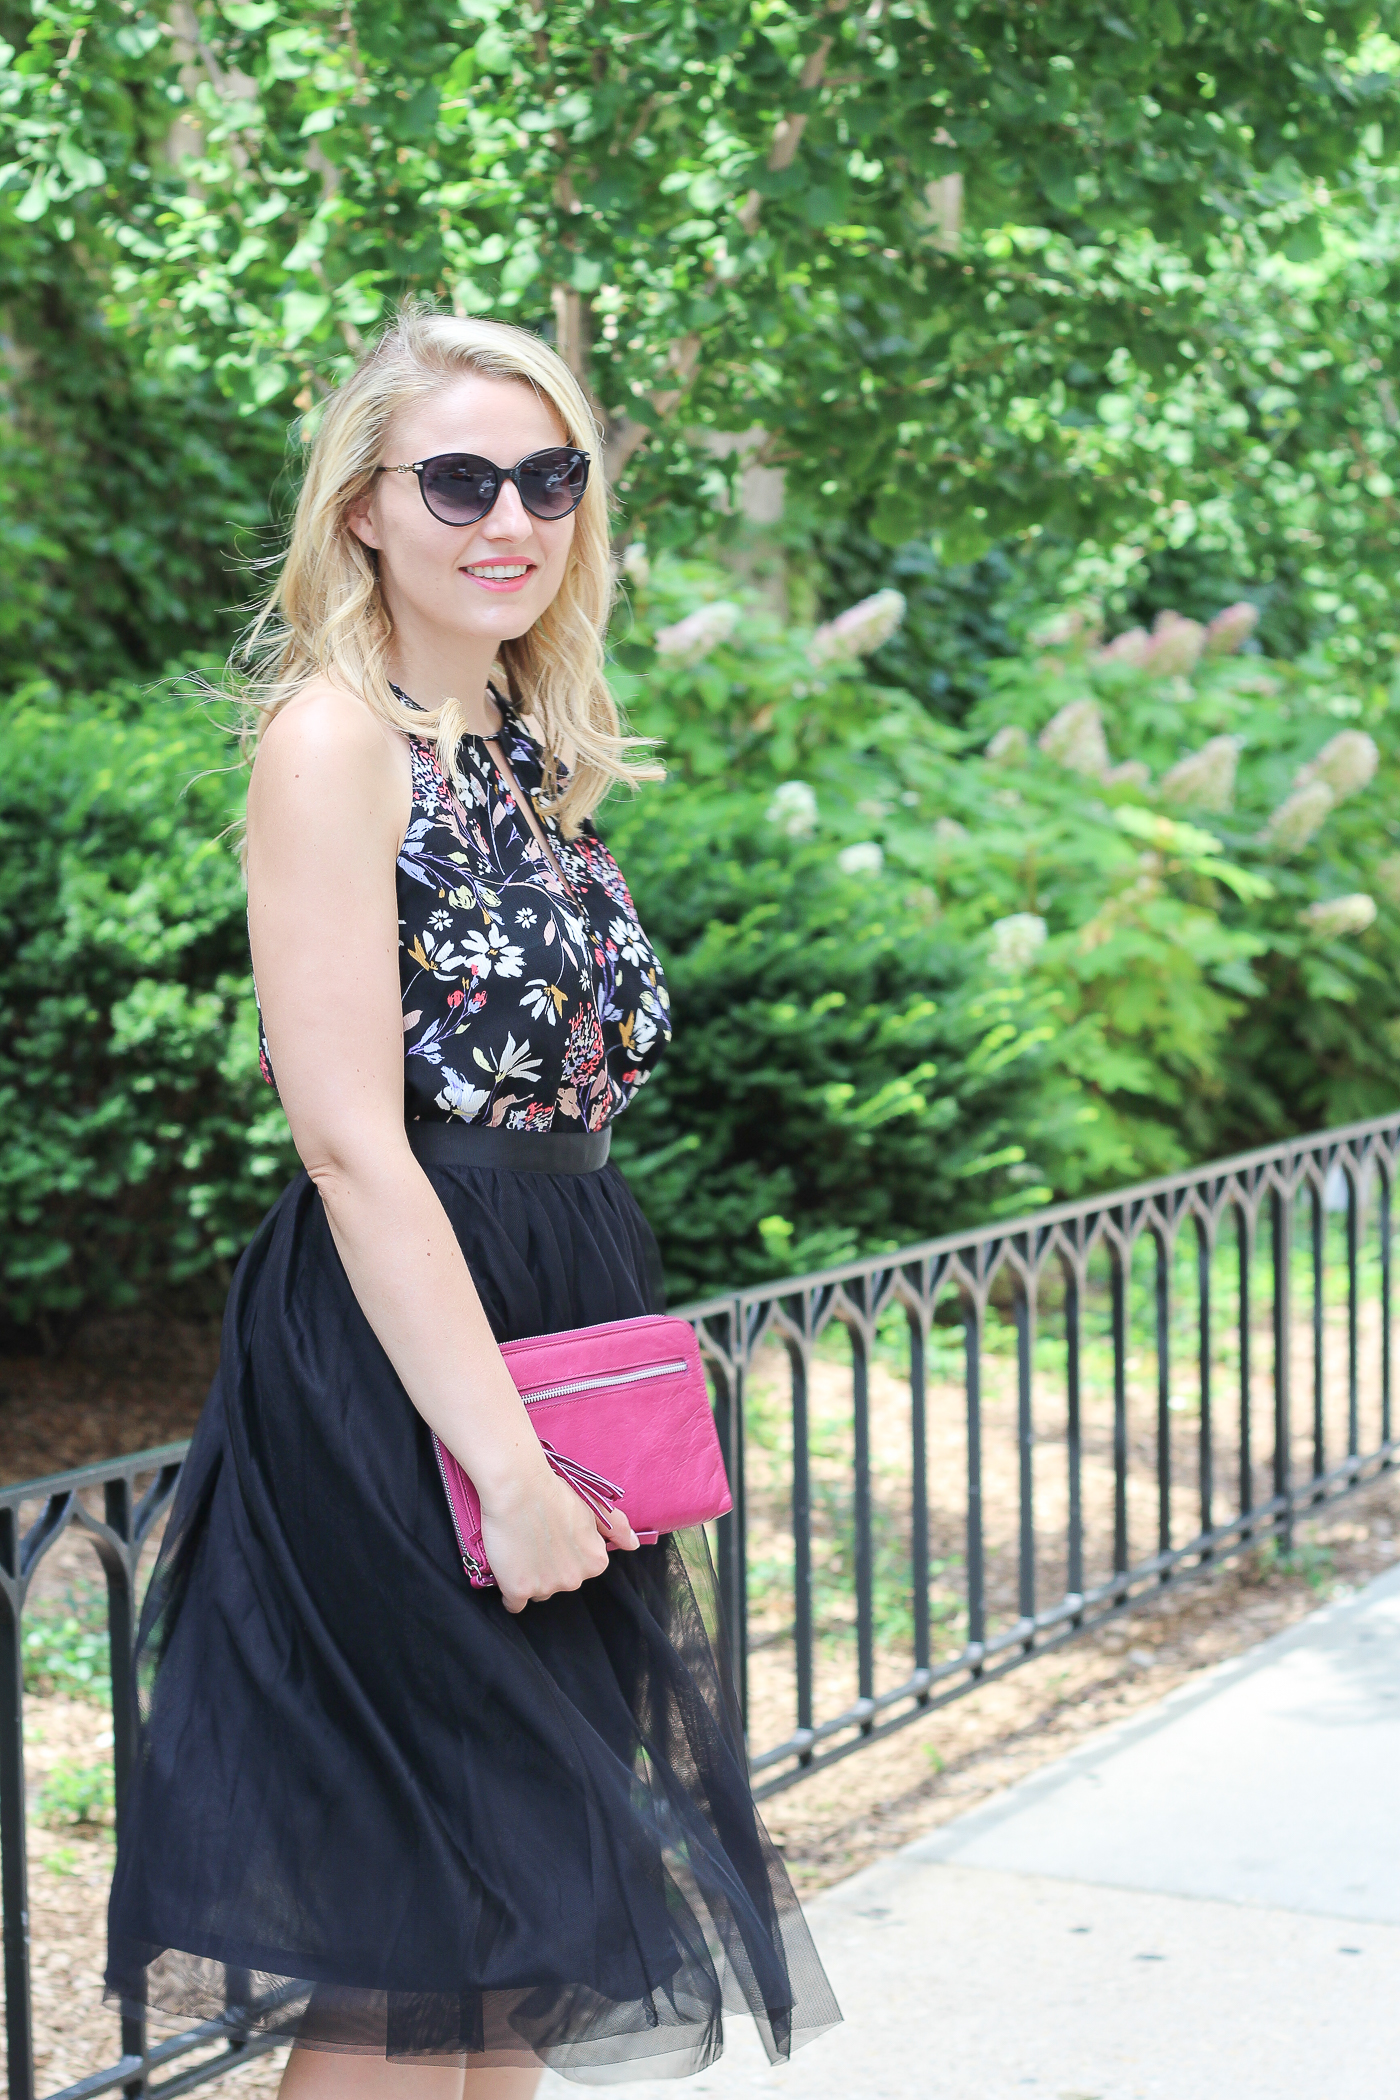 How to wear a halter top with a tulle skirt